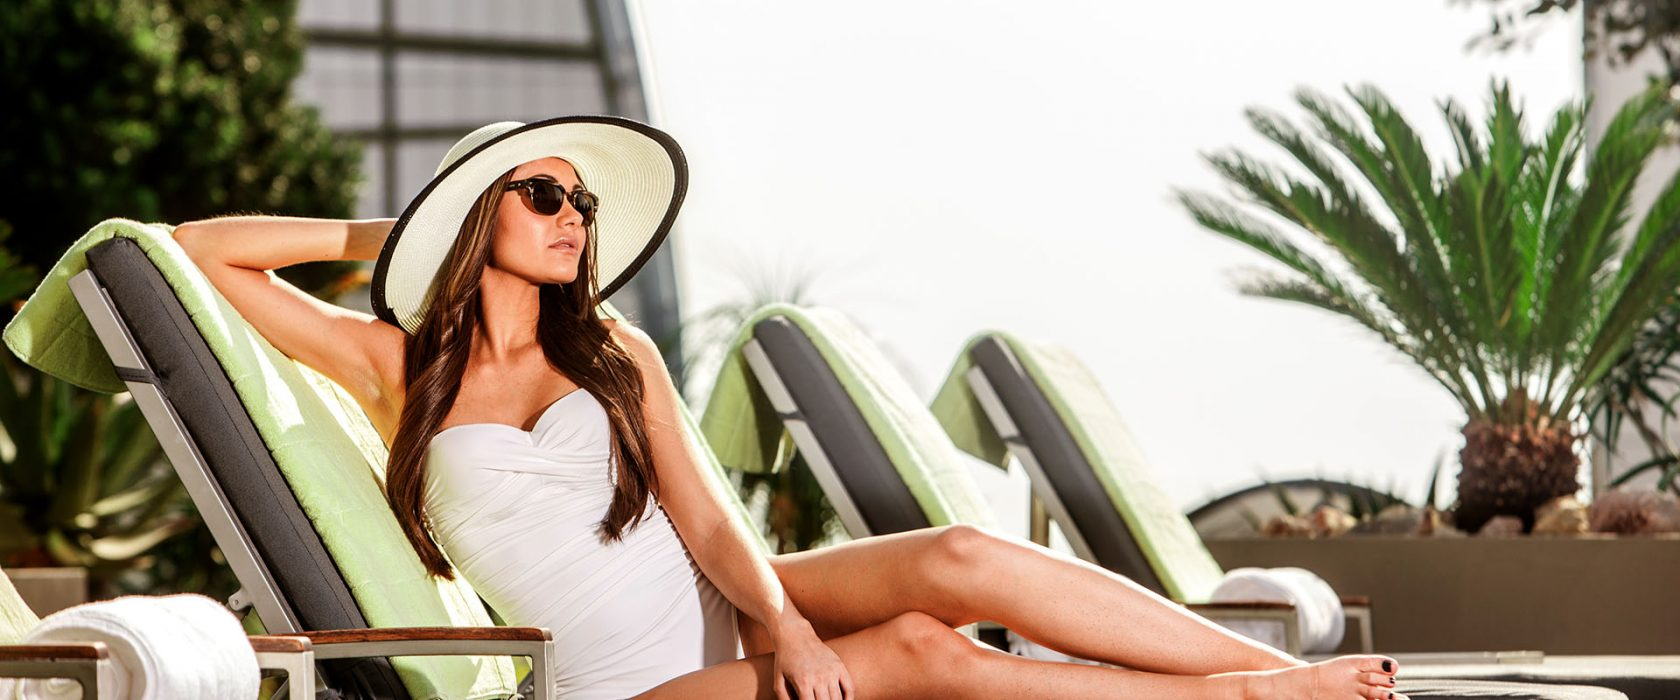 Woman On Poolside Lounger